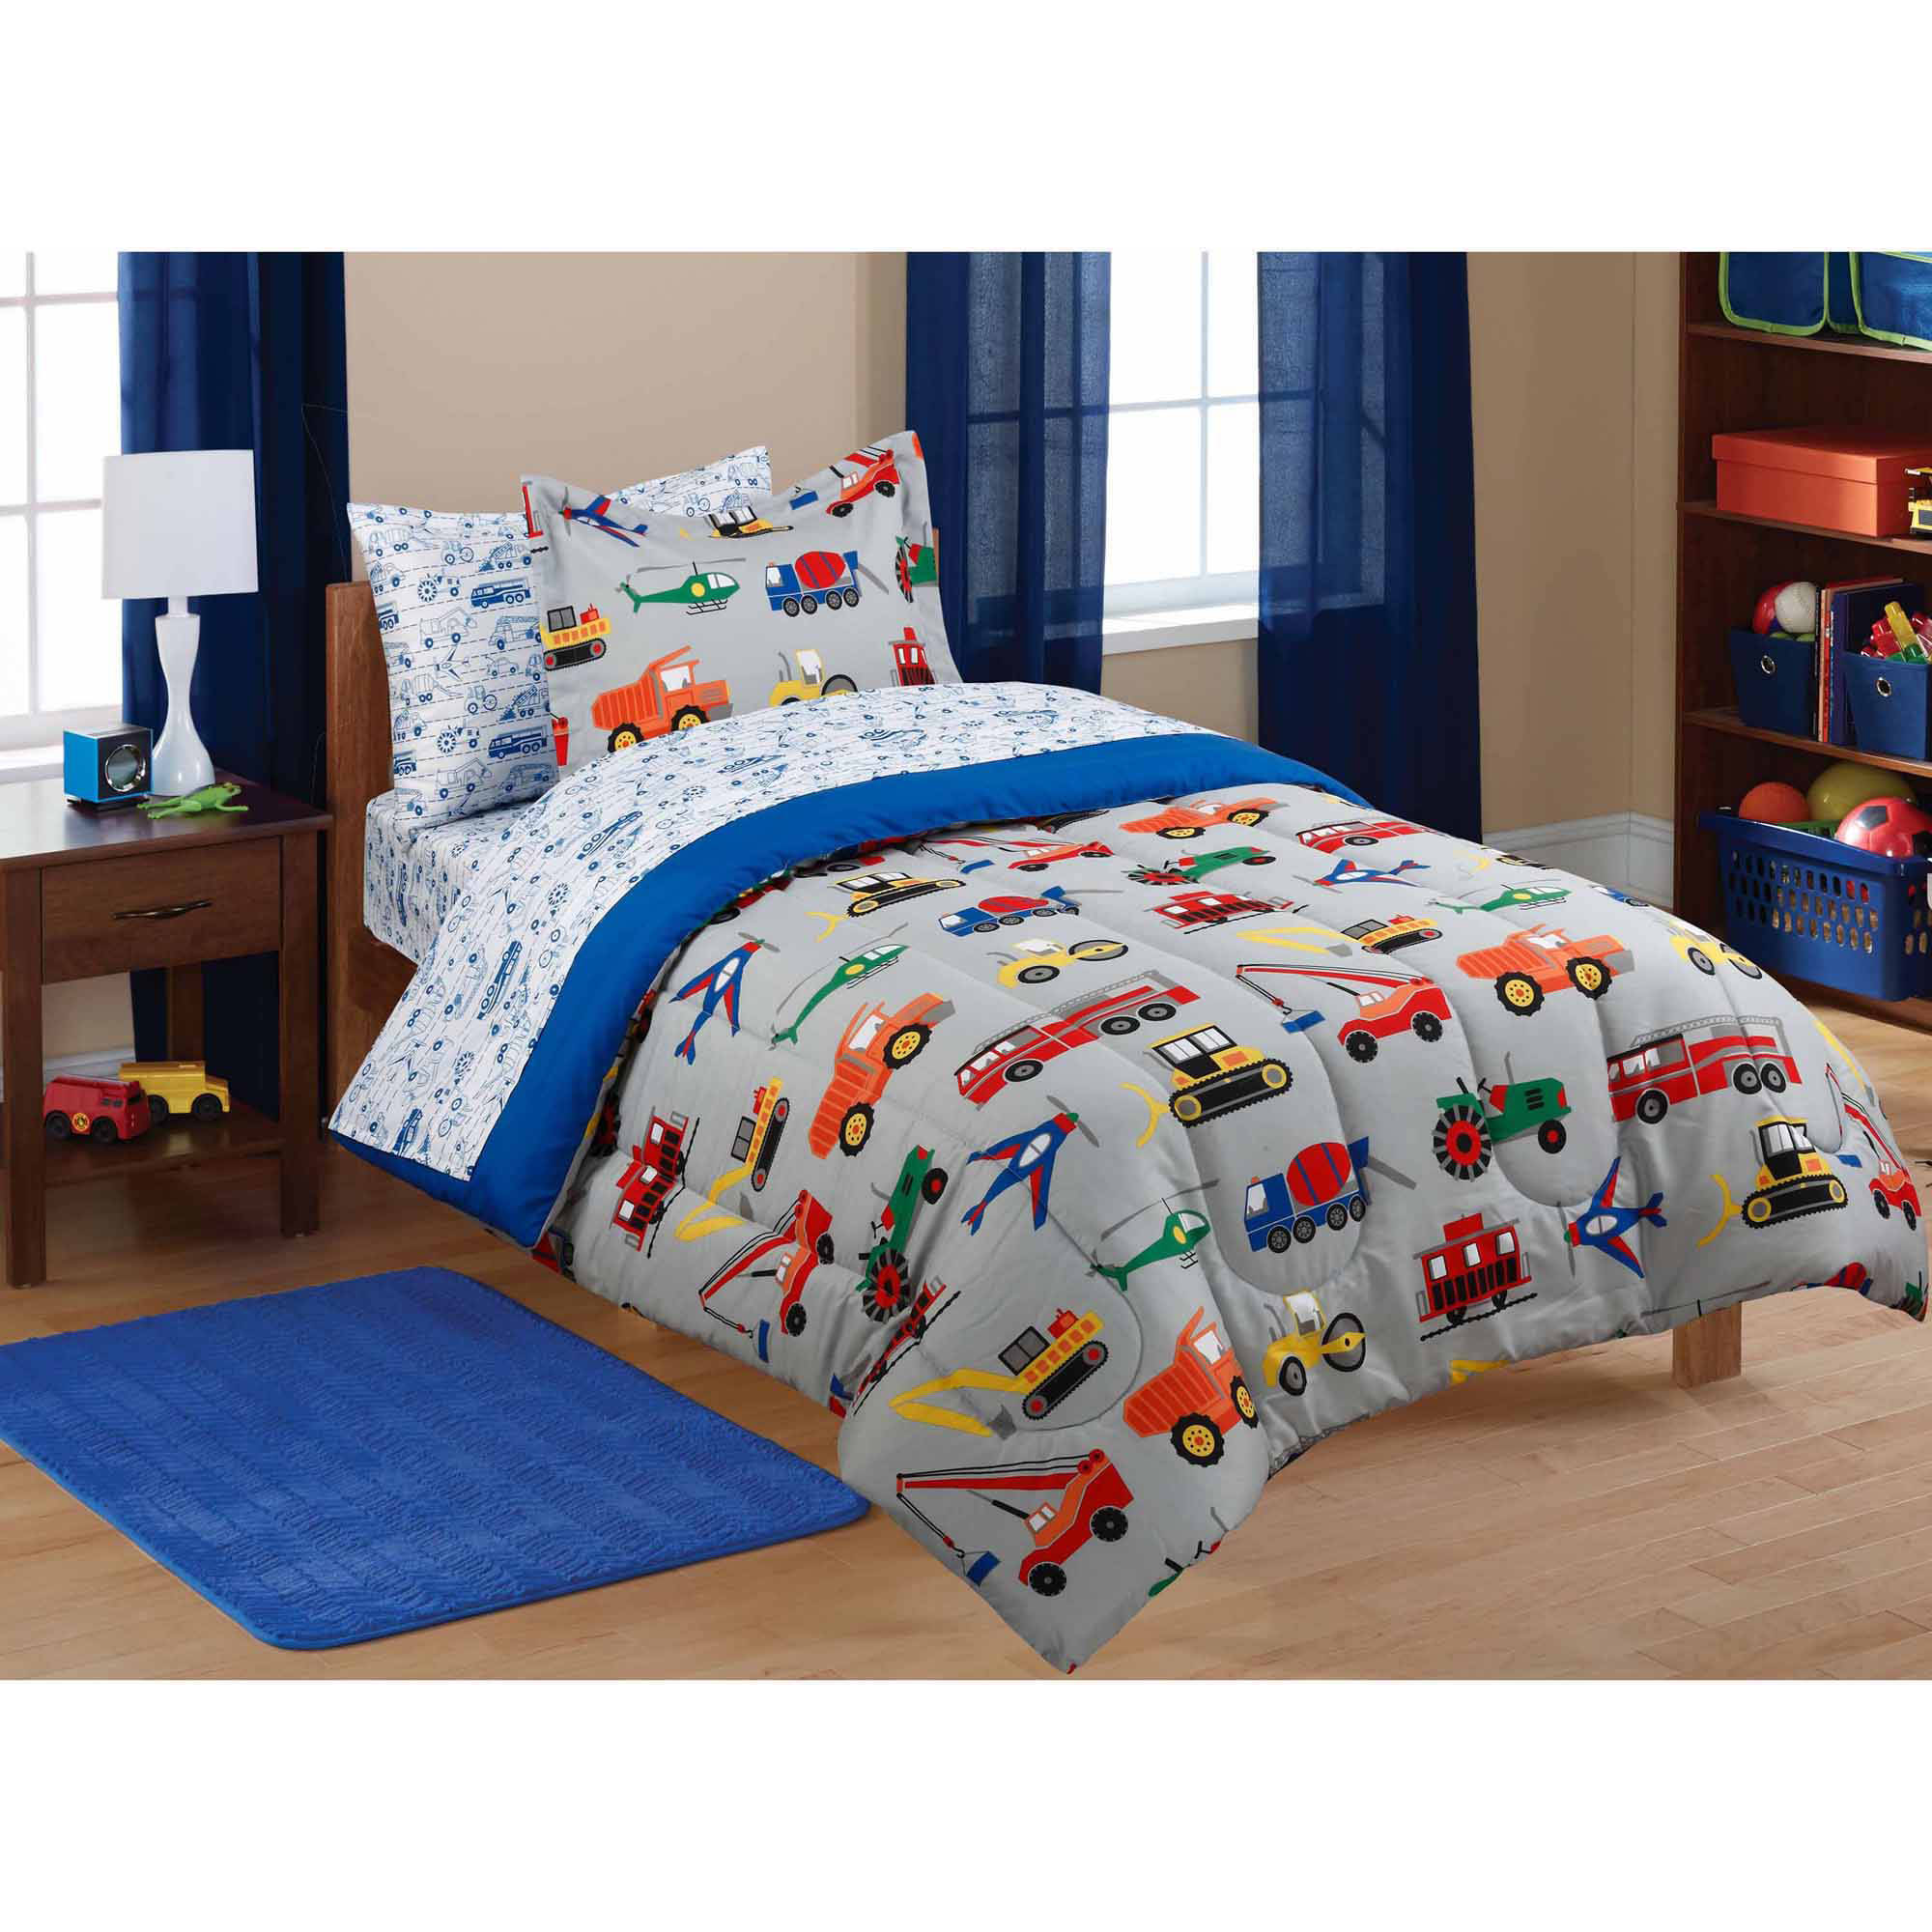 Mainstays Kids Transportation Bed in a Bag Coordinating Bedding Set